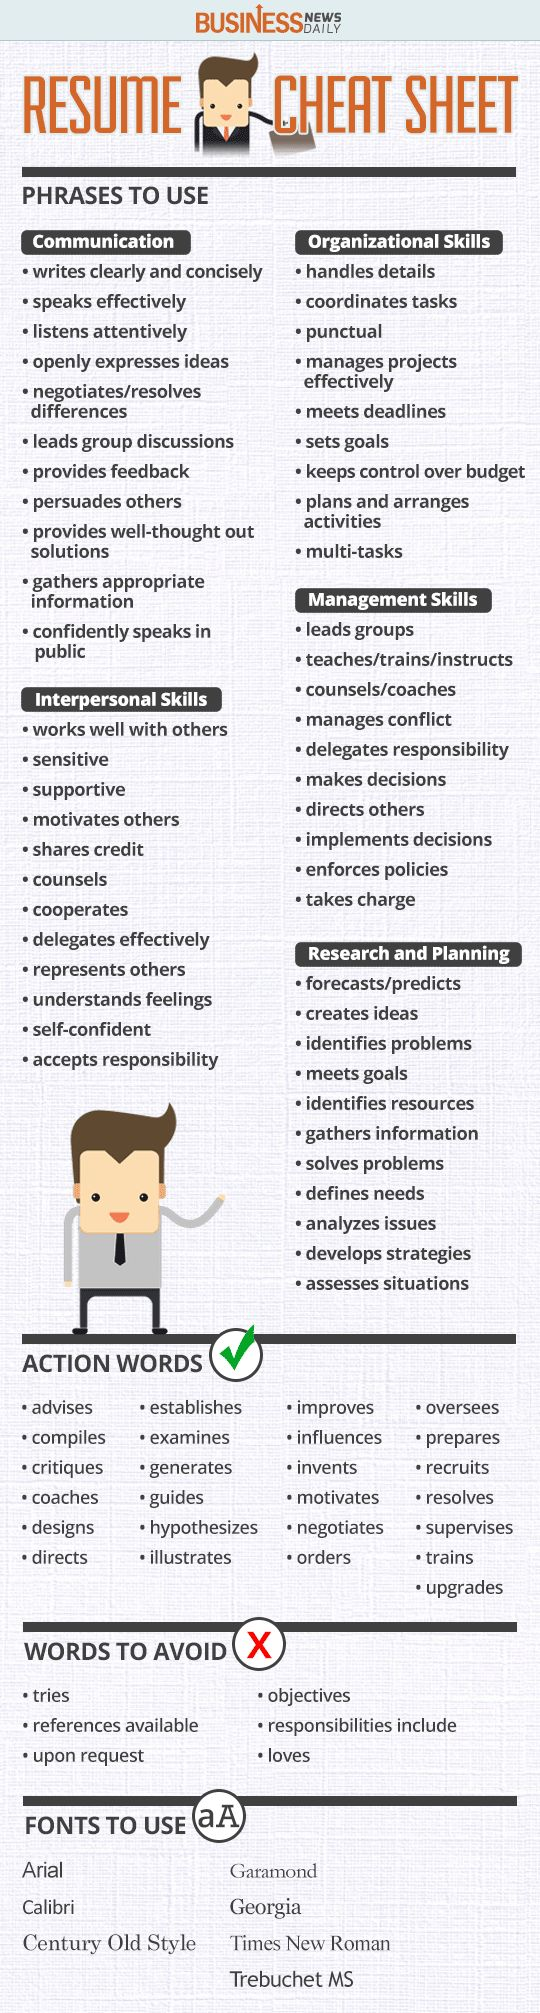 Opposenewapstandardsus  Pretty  Ideas About Resume On Pinterest  Cv Format Resume Cv And  With Fair Resume Cheat Sheet Infographic Andrews Almost Done With A Complete Unit On Employment Which With Divine What Is Resume Cover Letter Also Taxi Driver Resume In Addition Executive Summary On Resume And Front Office Manager Resume As Well As Free Resume Checker Additionally Resume Make From Pinterestcom With Opposenewapstandardsus  Fair  Ideas About Resume On Pinterest  Cv Format Resume Cv And  With Divine Resume Cheat Sheet Infographic Andrews Almost Done With A Complete Unit On Employment Which And Pretty What Is Resume Cover Letter Also Taxi Driver Resume In Addition Executive Summary On Resume From Pinterestcom